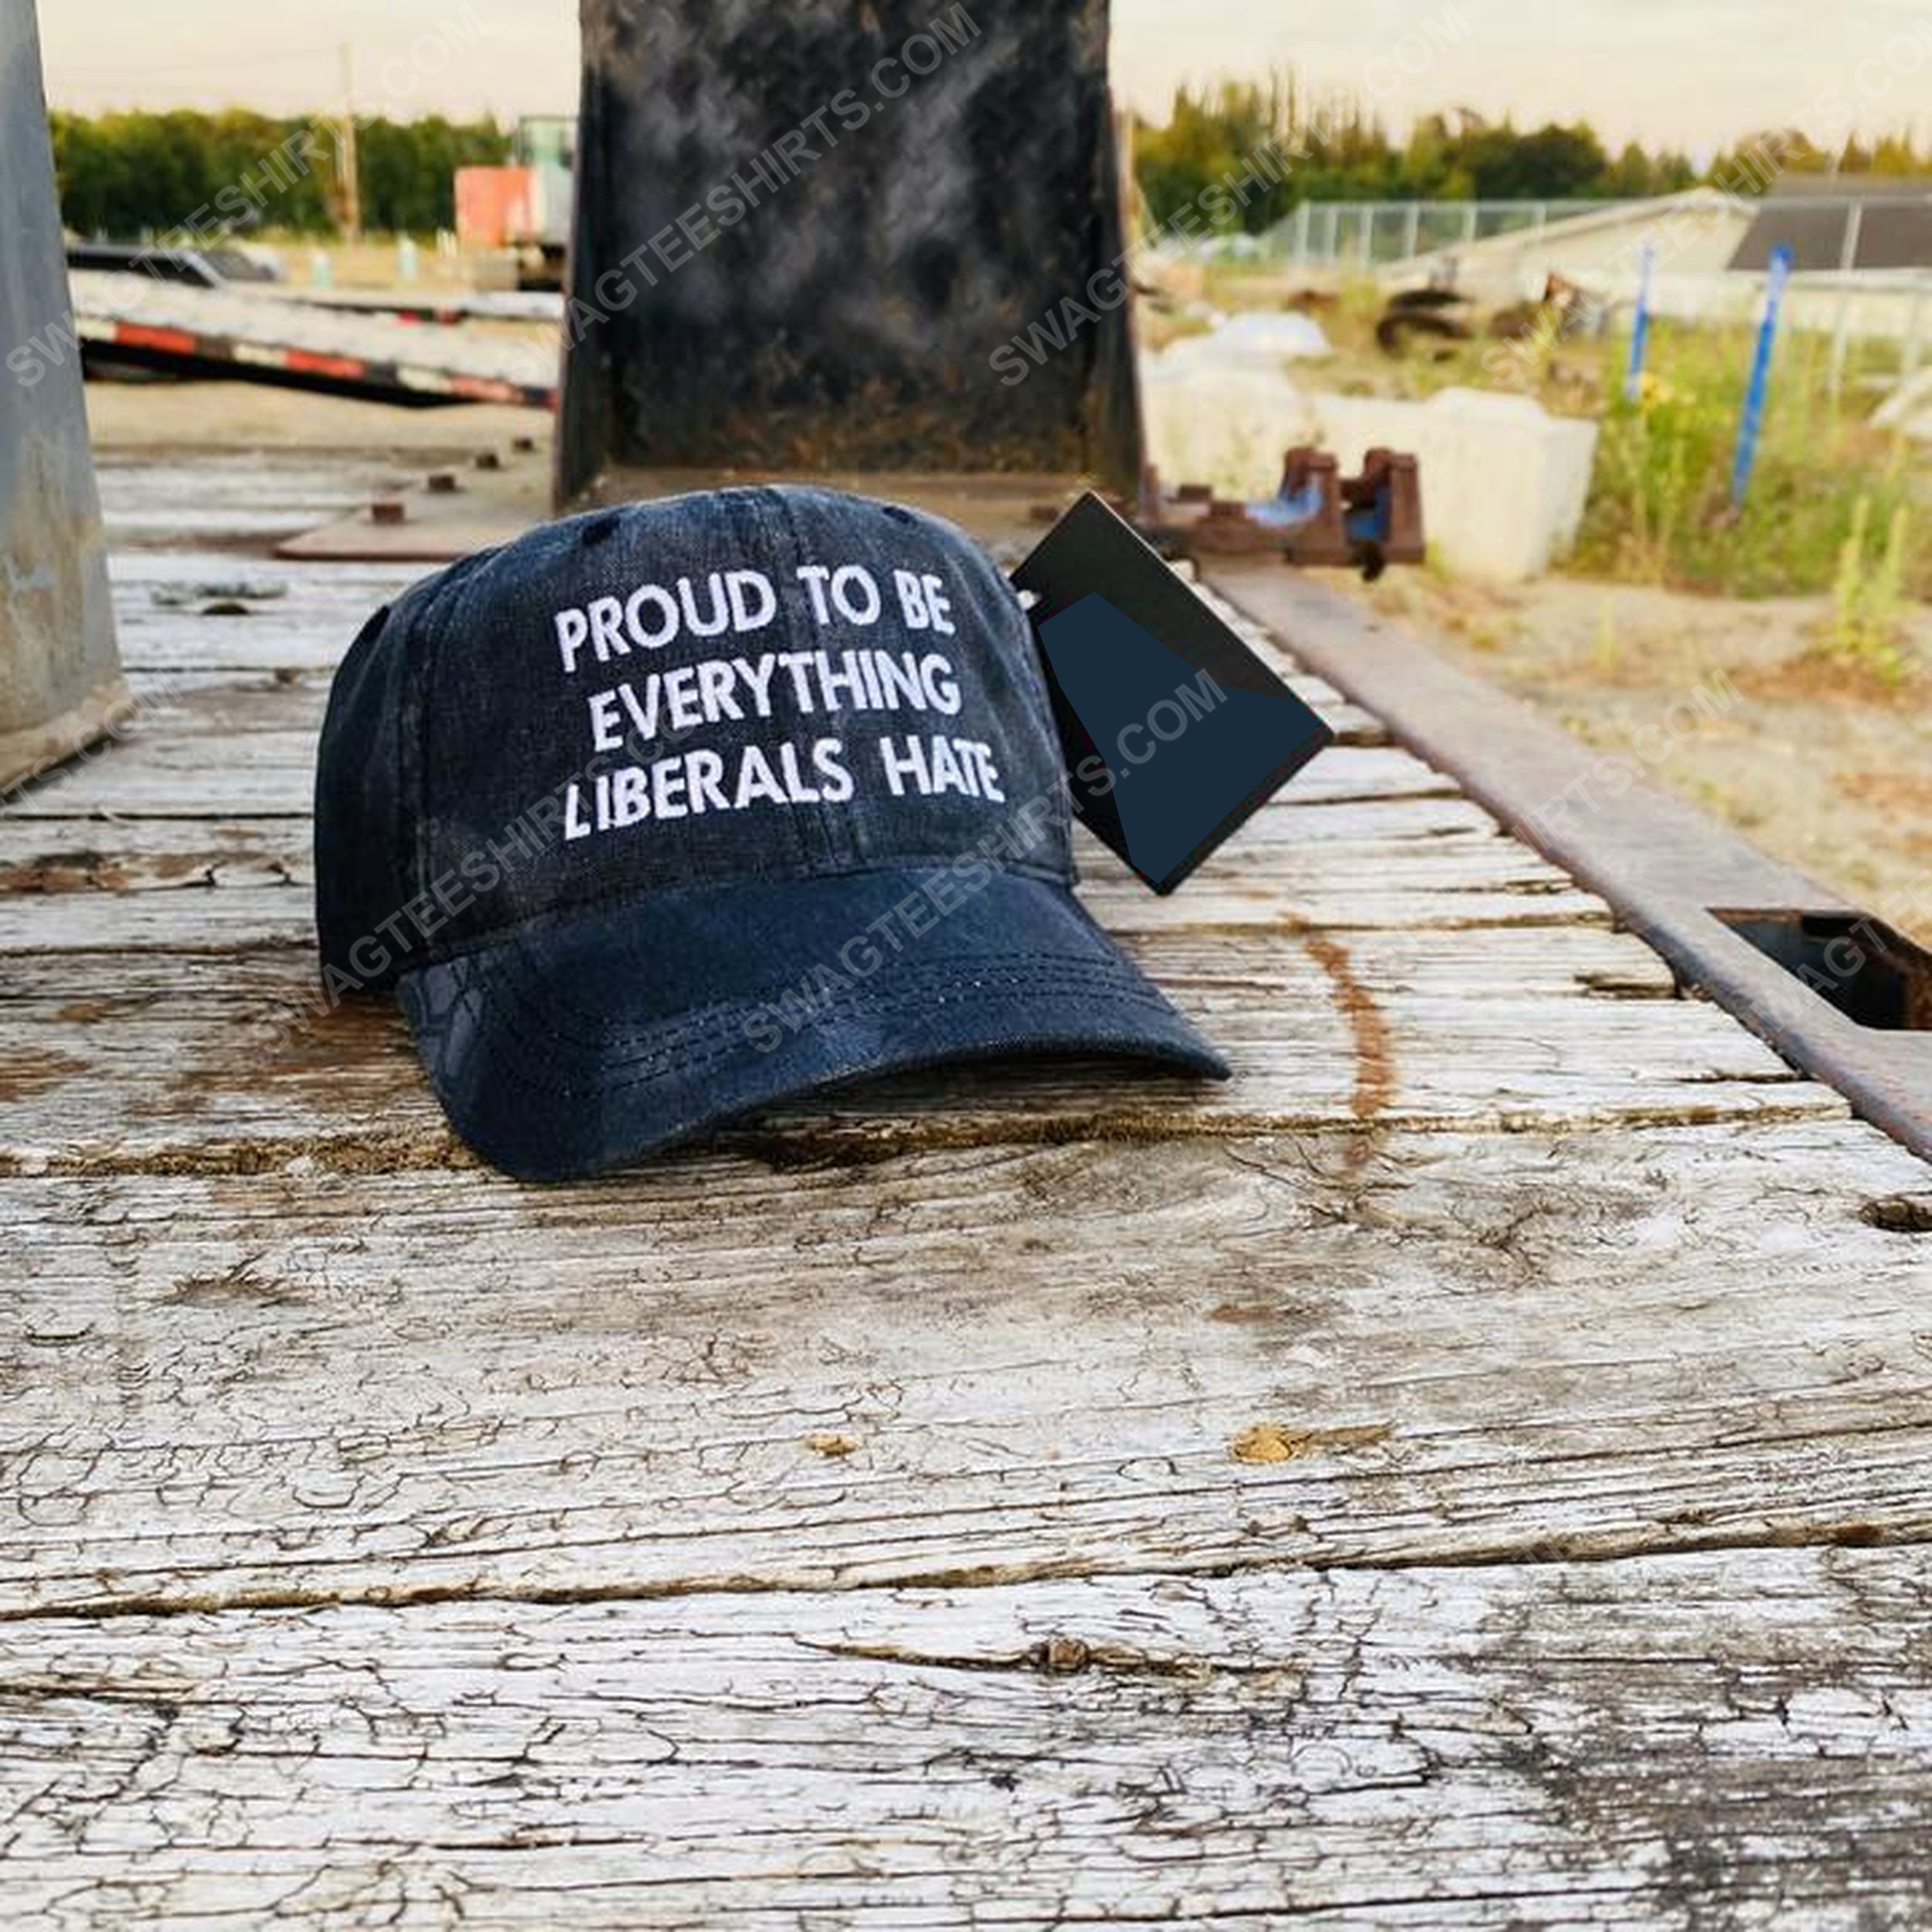 Proud to be everything liberals hate full print classic hat 1 - Copy